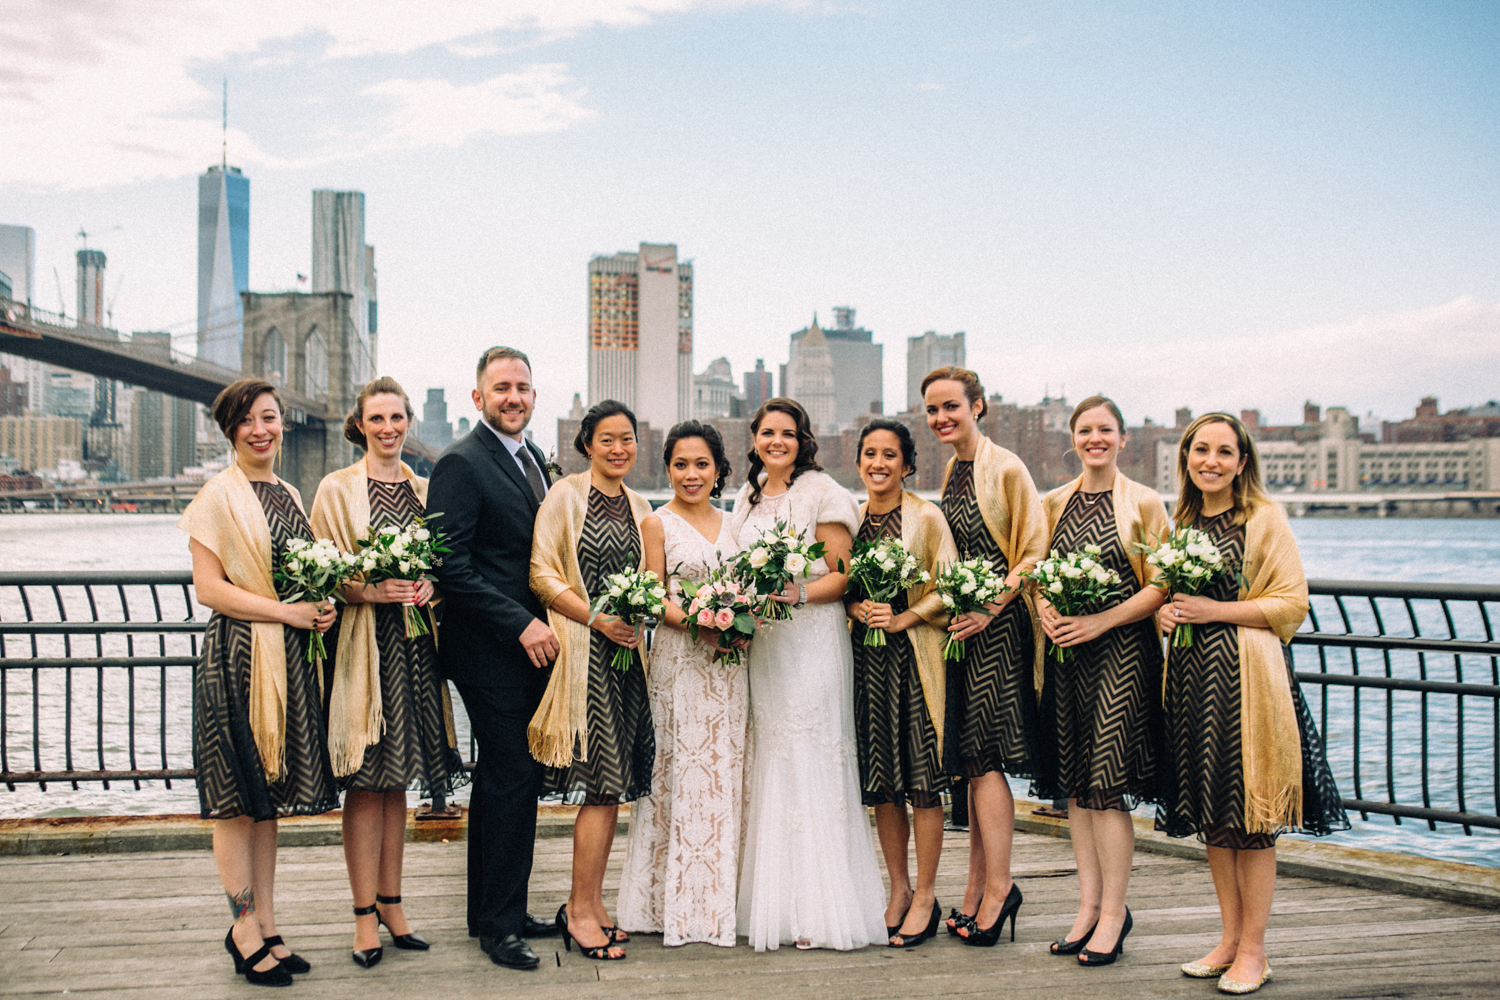 Mixed gender bridal party in Brooklyn | photographed by Amber Marlow, NYC